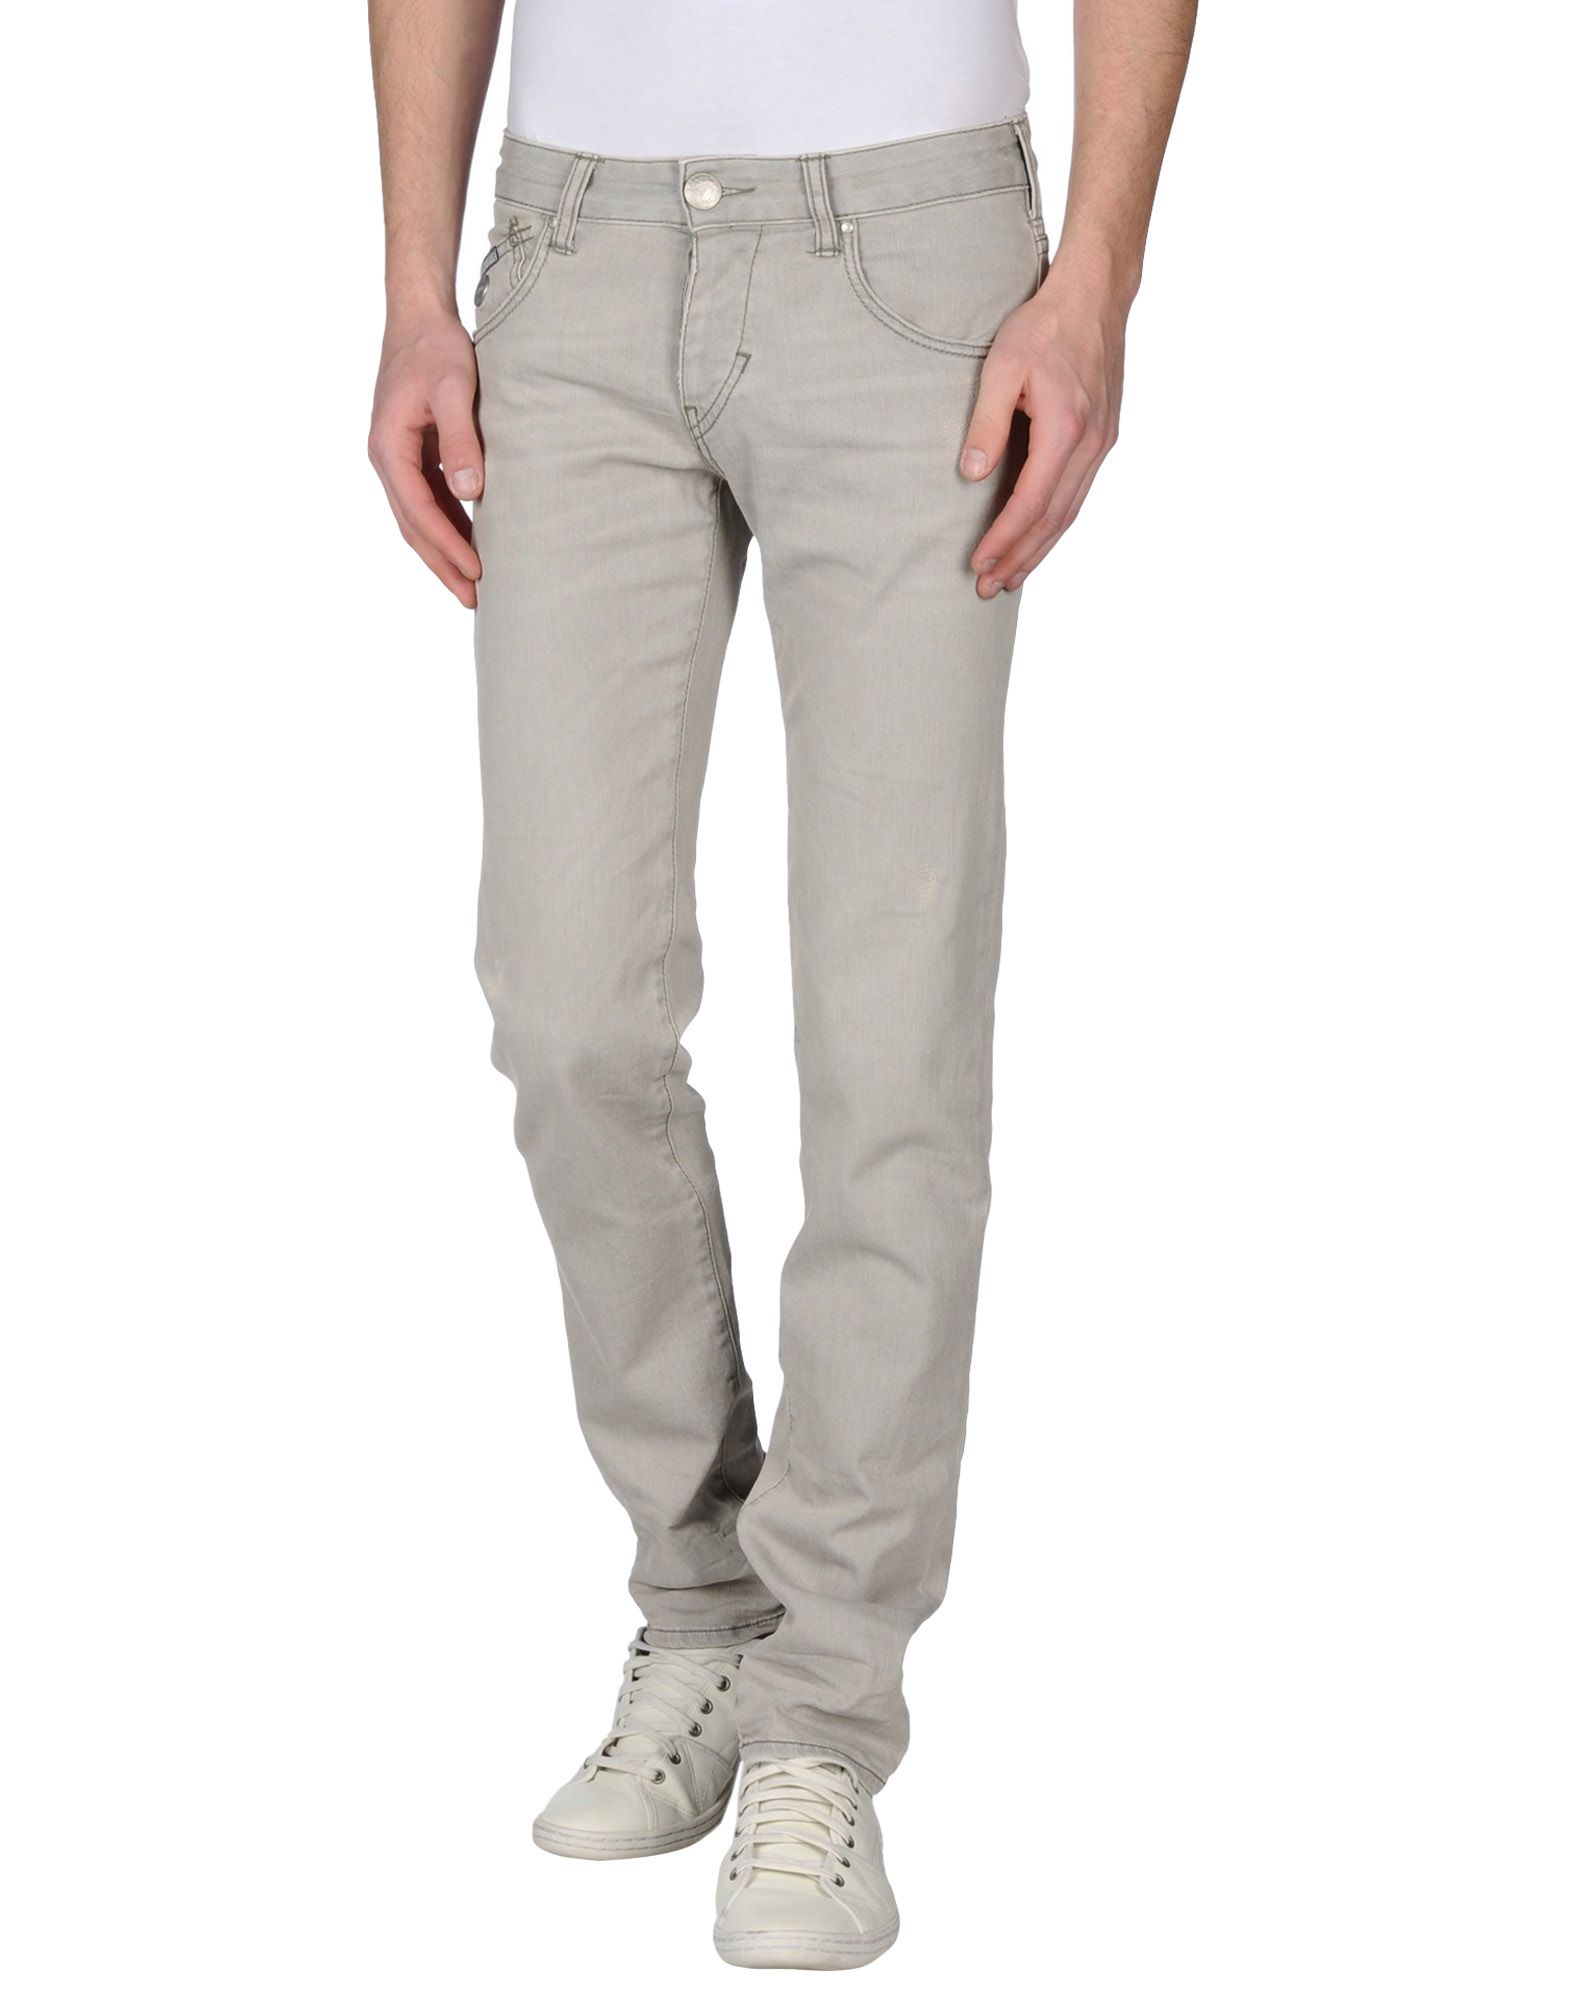 Free shipping and returns on Women's Grey Wash Jeans & Denim at makeshop-mdrcky9h.ga